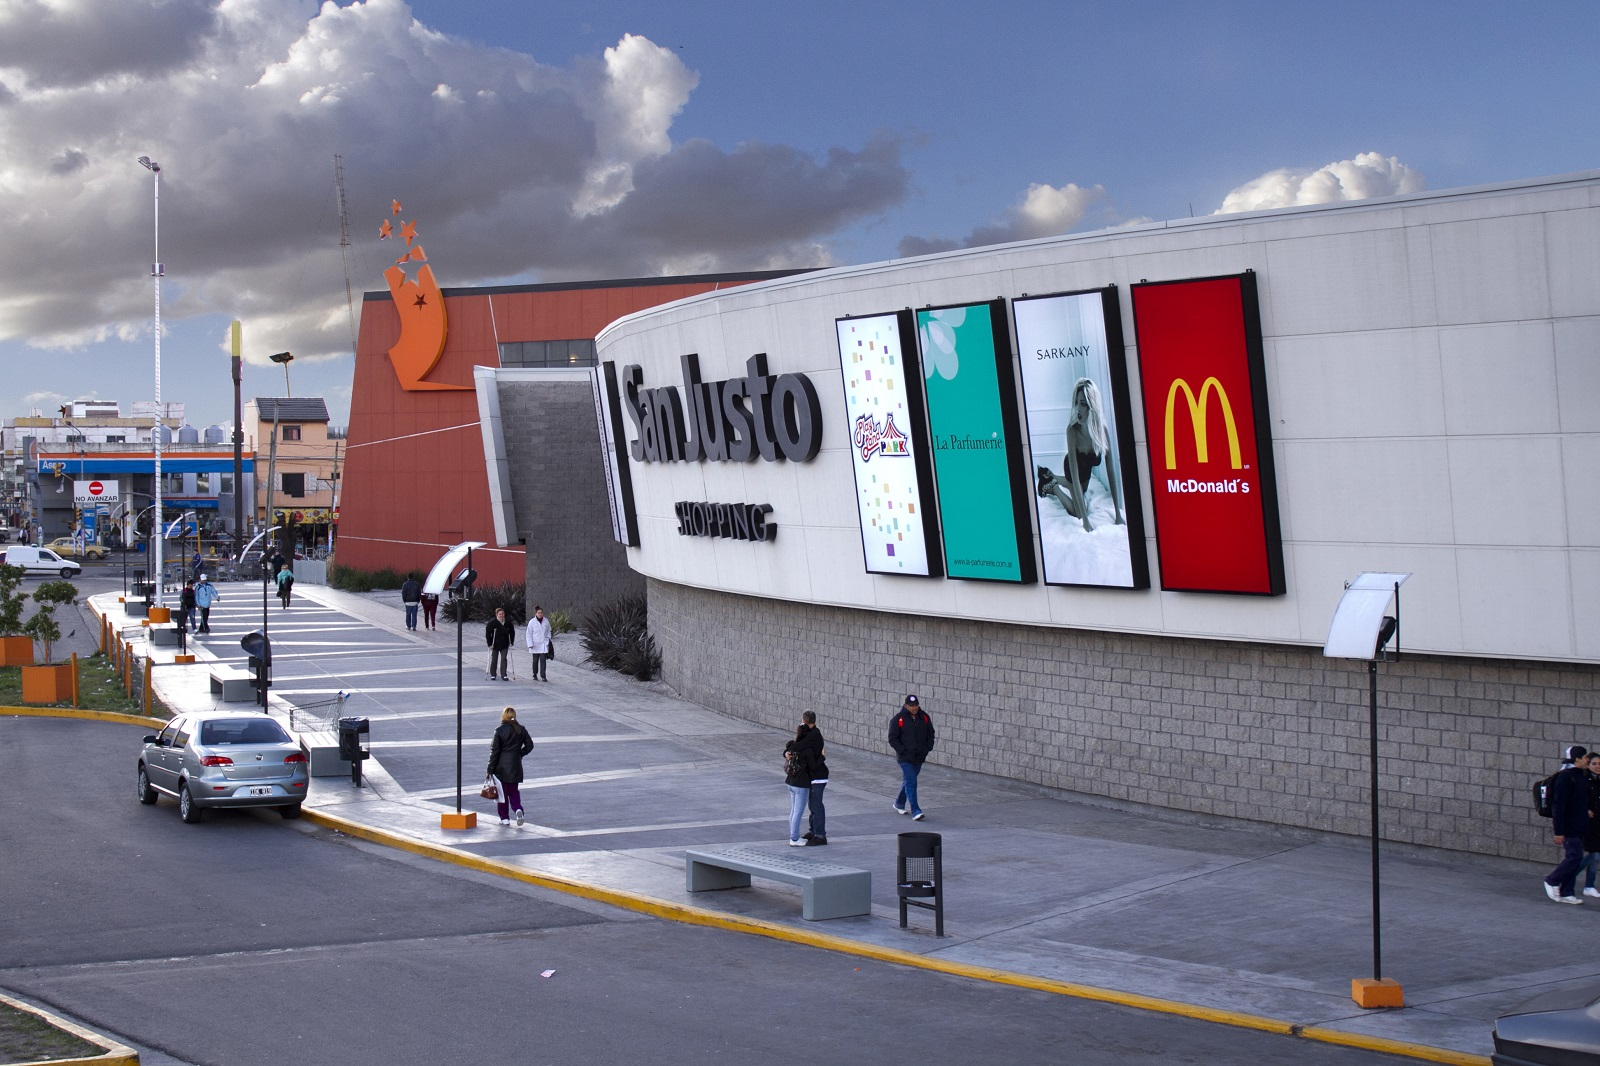 San Justo Shopping Gla